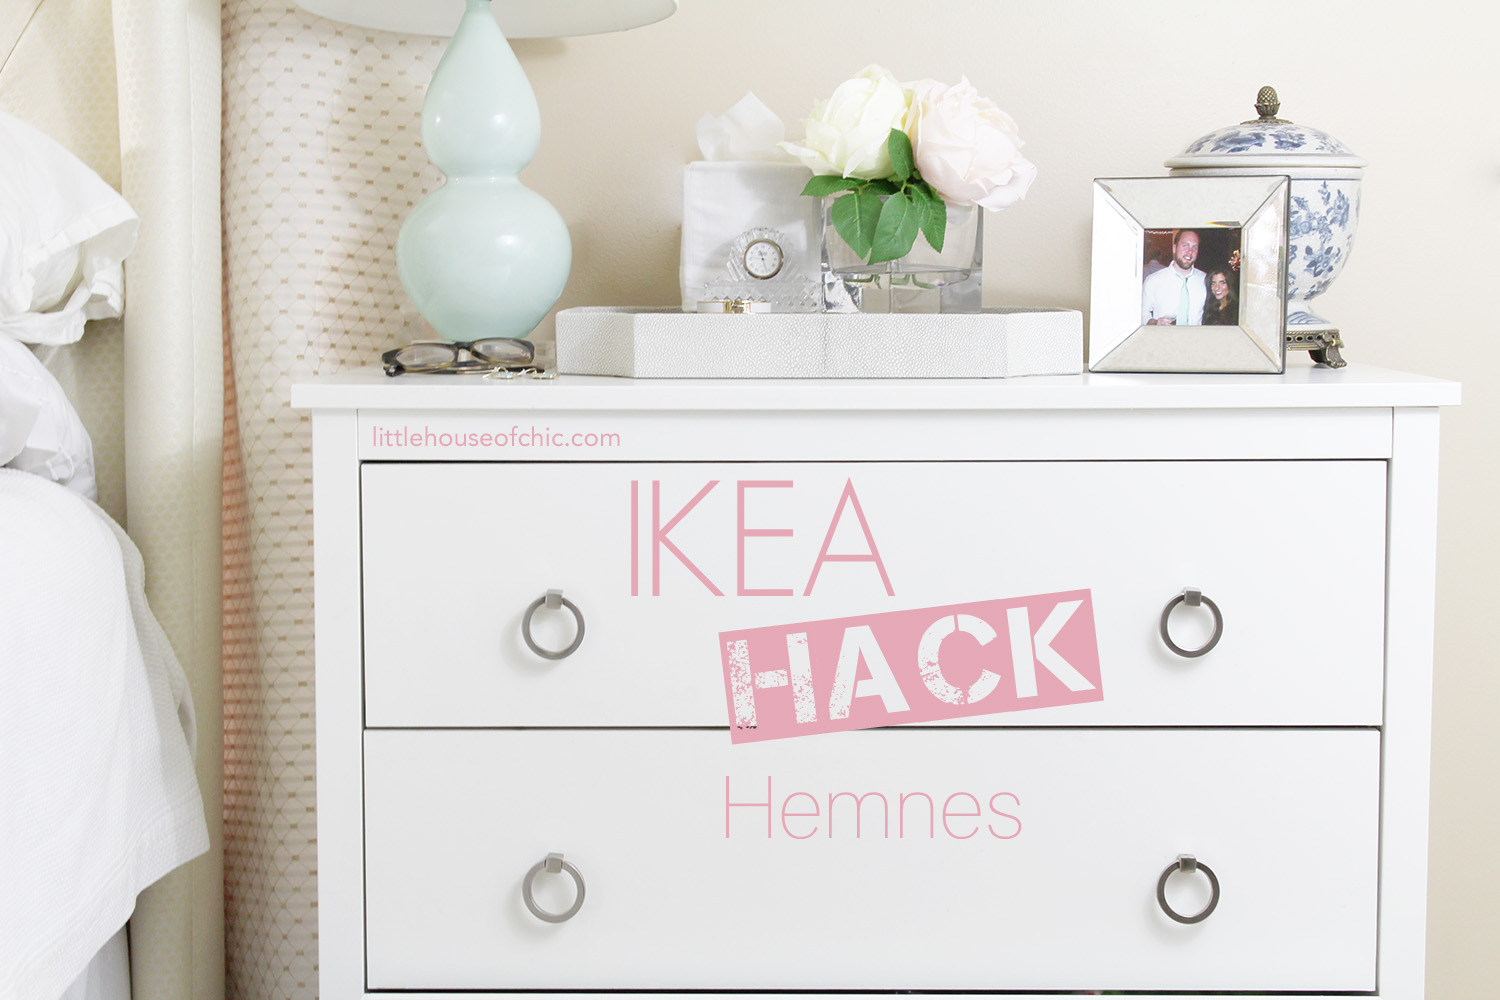 ikea hack hemnes little house of chic. Black Bedroom Furniture Sets. Home Design Ideas